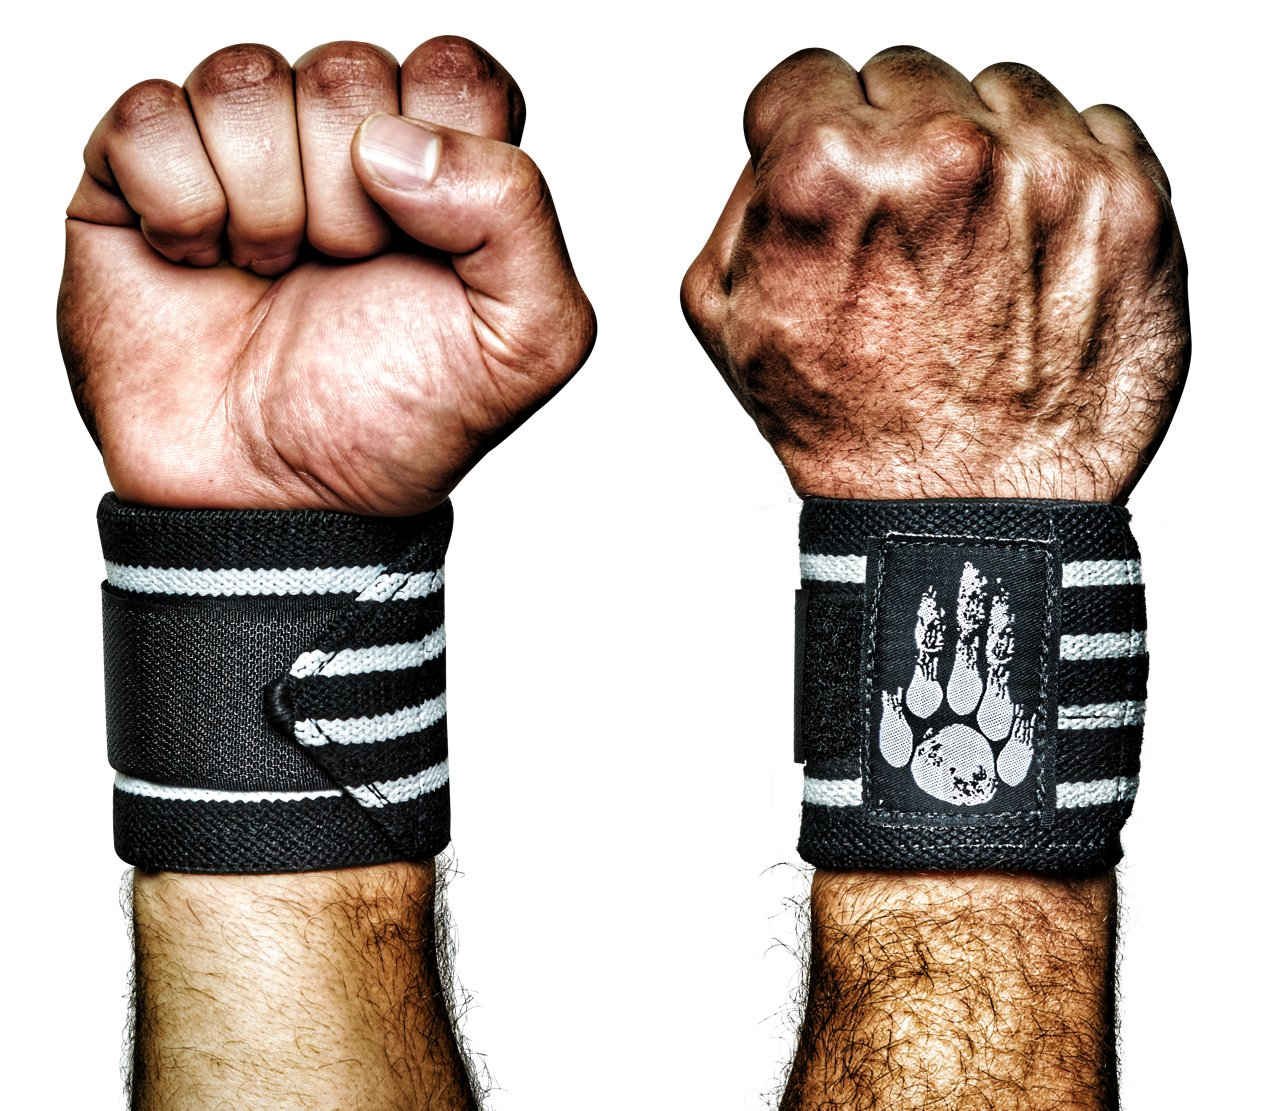 MANIMAL: The Best Weightlifting Straps with Superior Wrist Support, 1 Wrist Wraps Trusted by Professional Powerlifting, Strongman, Crossfit and Olympic Athletes - Venom